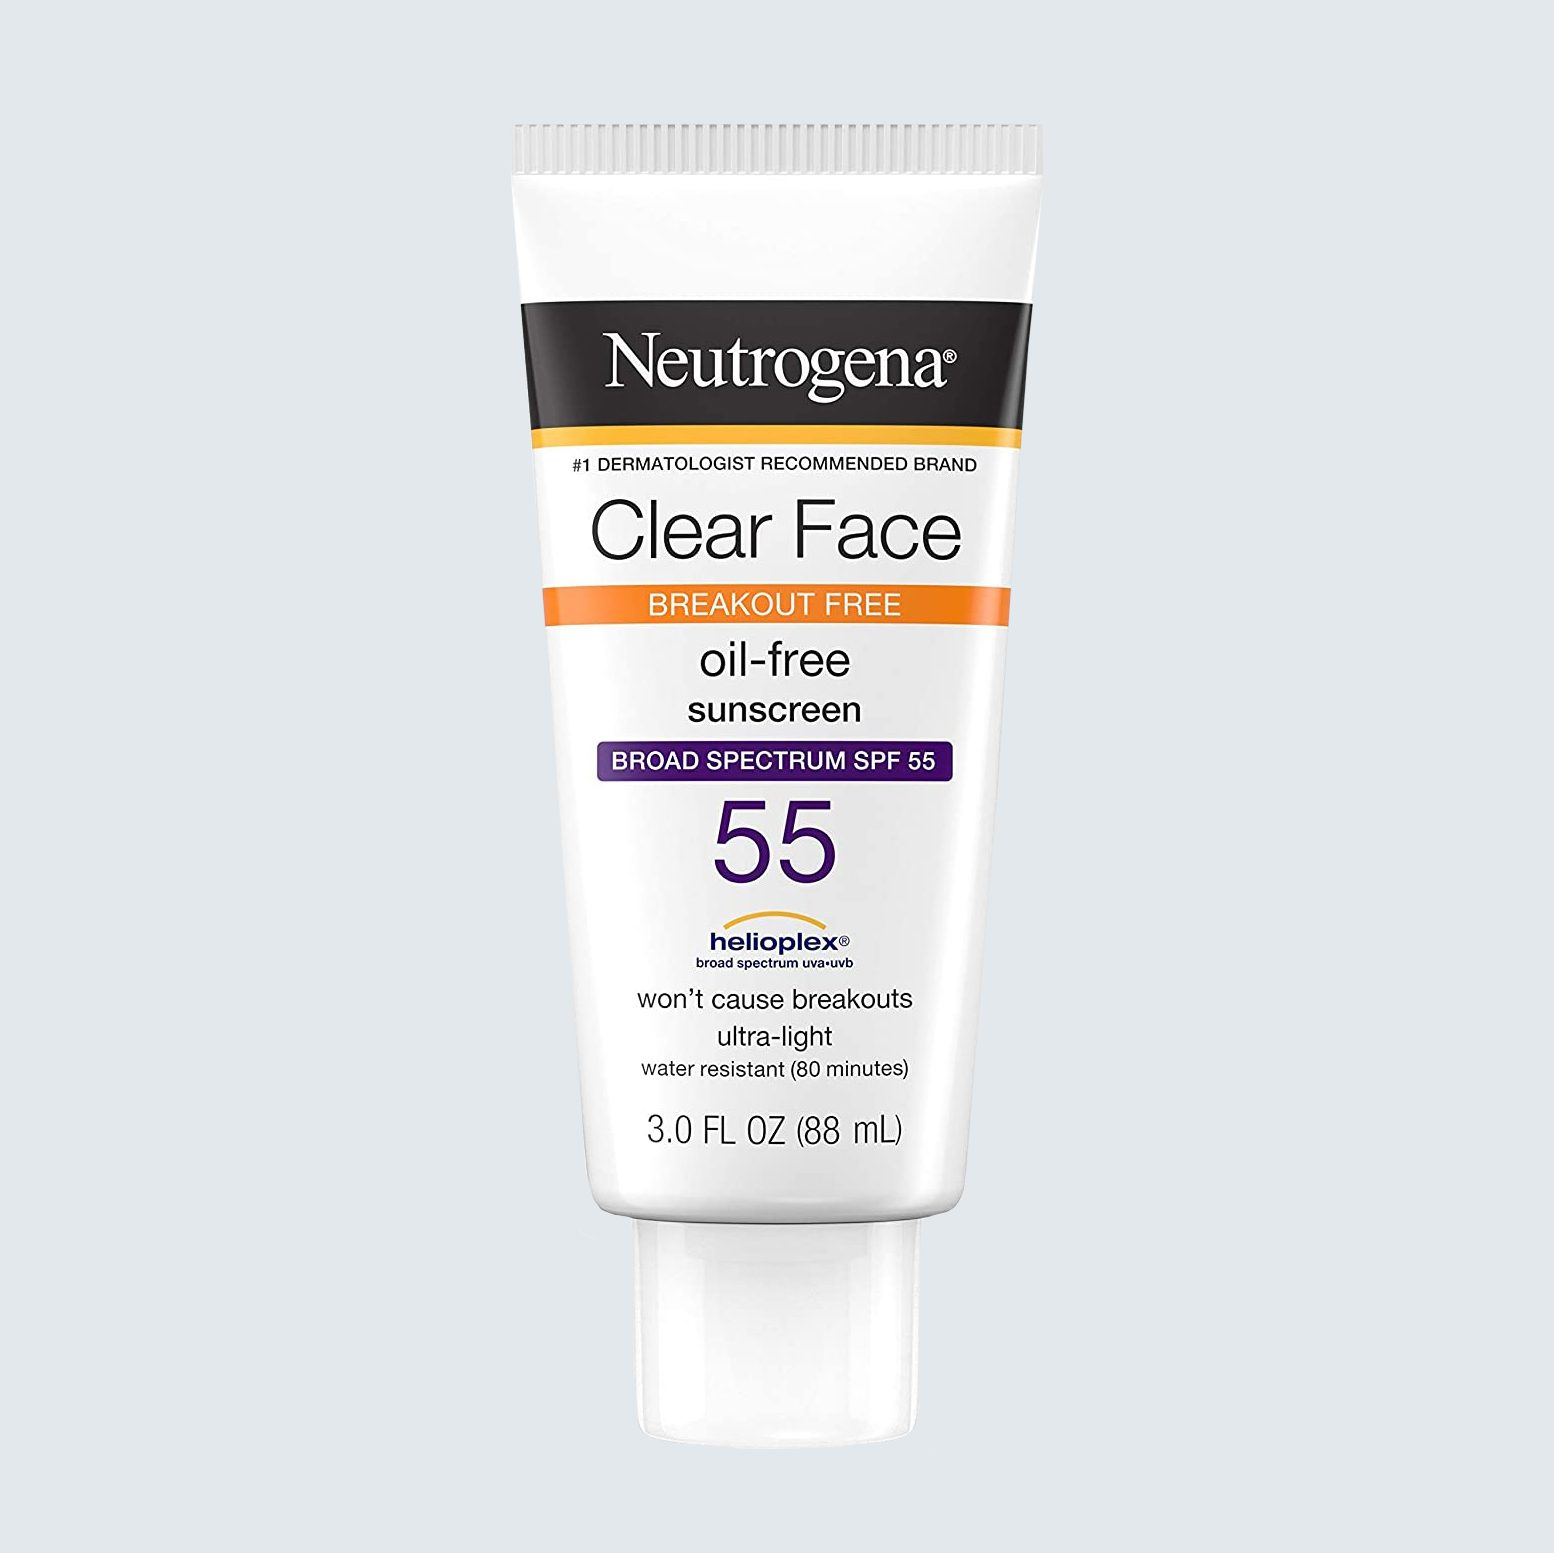 Neutrogena Clear Face Broad Spectrum SPF 55